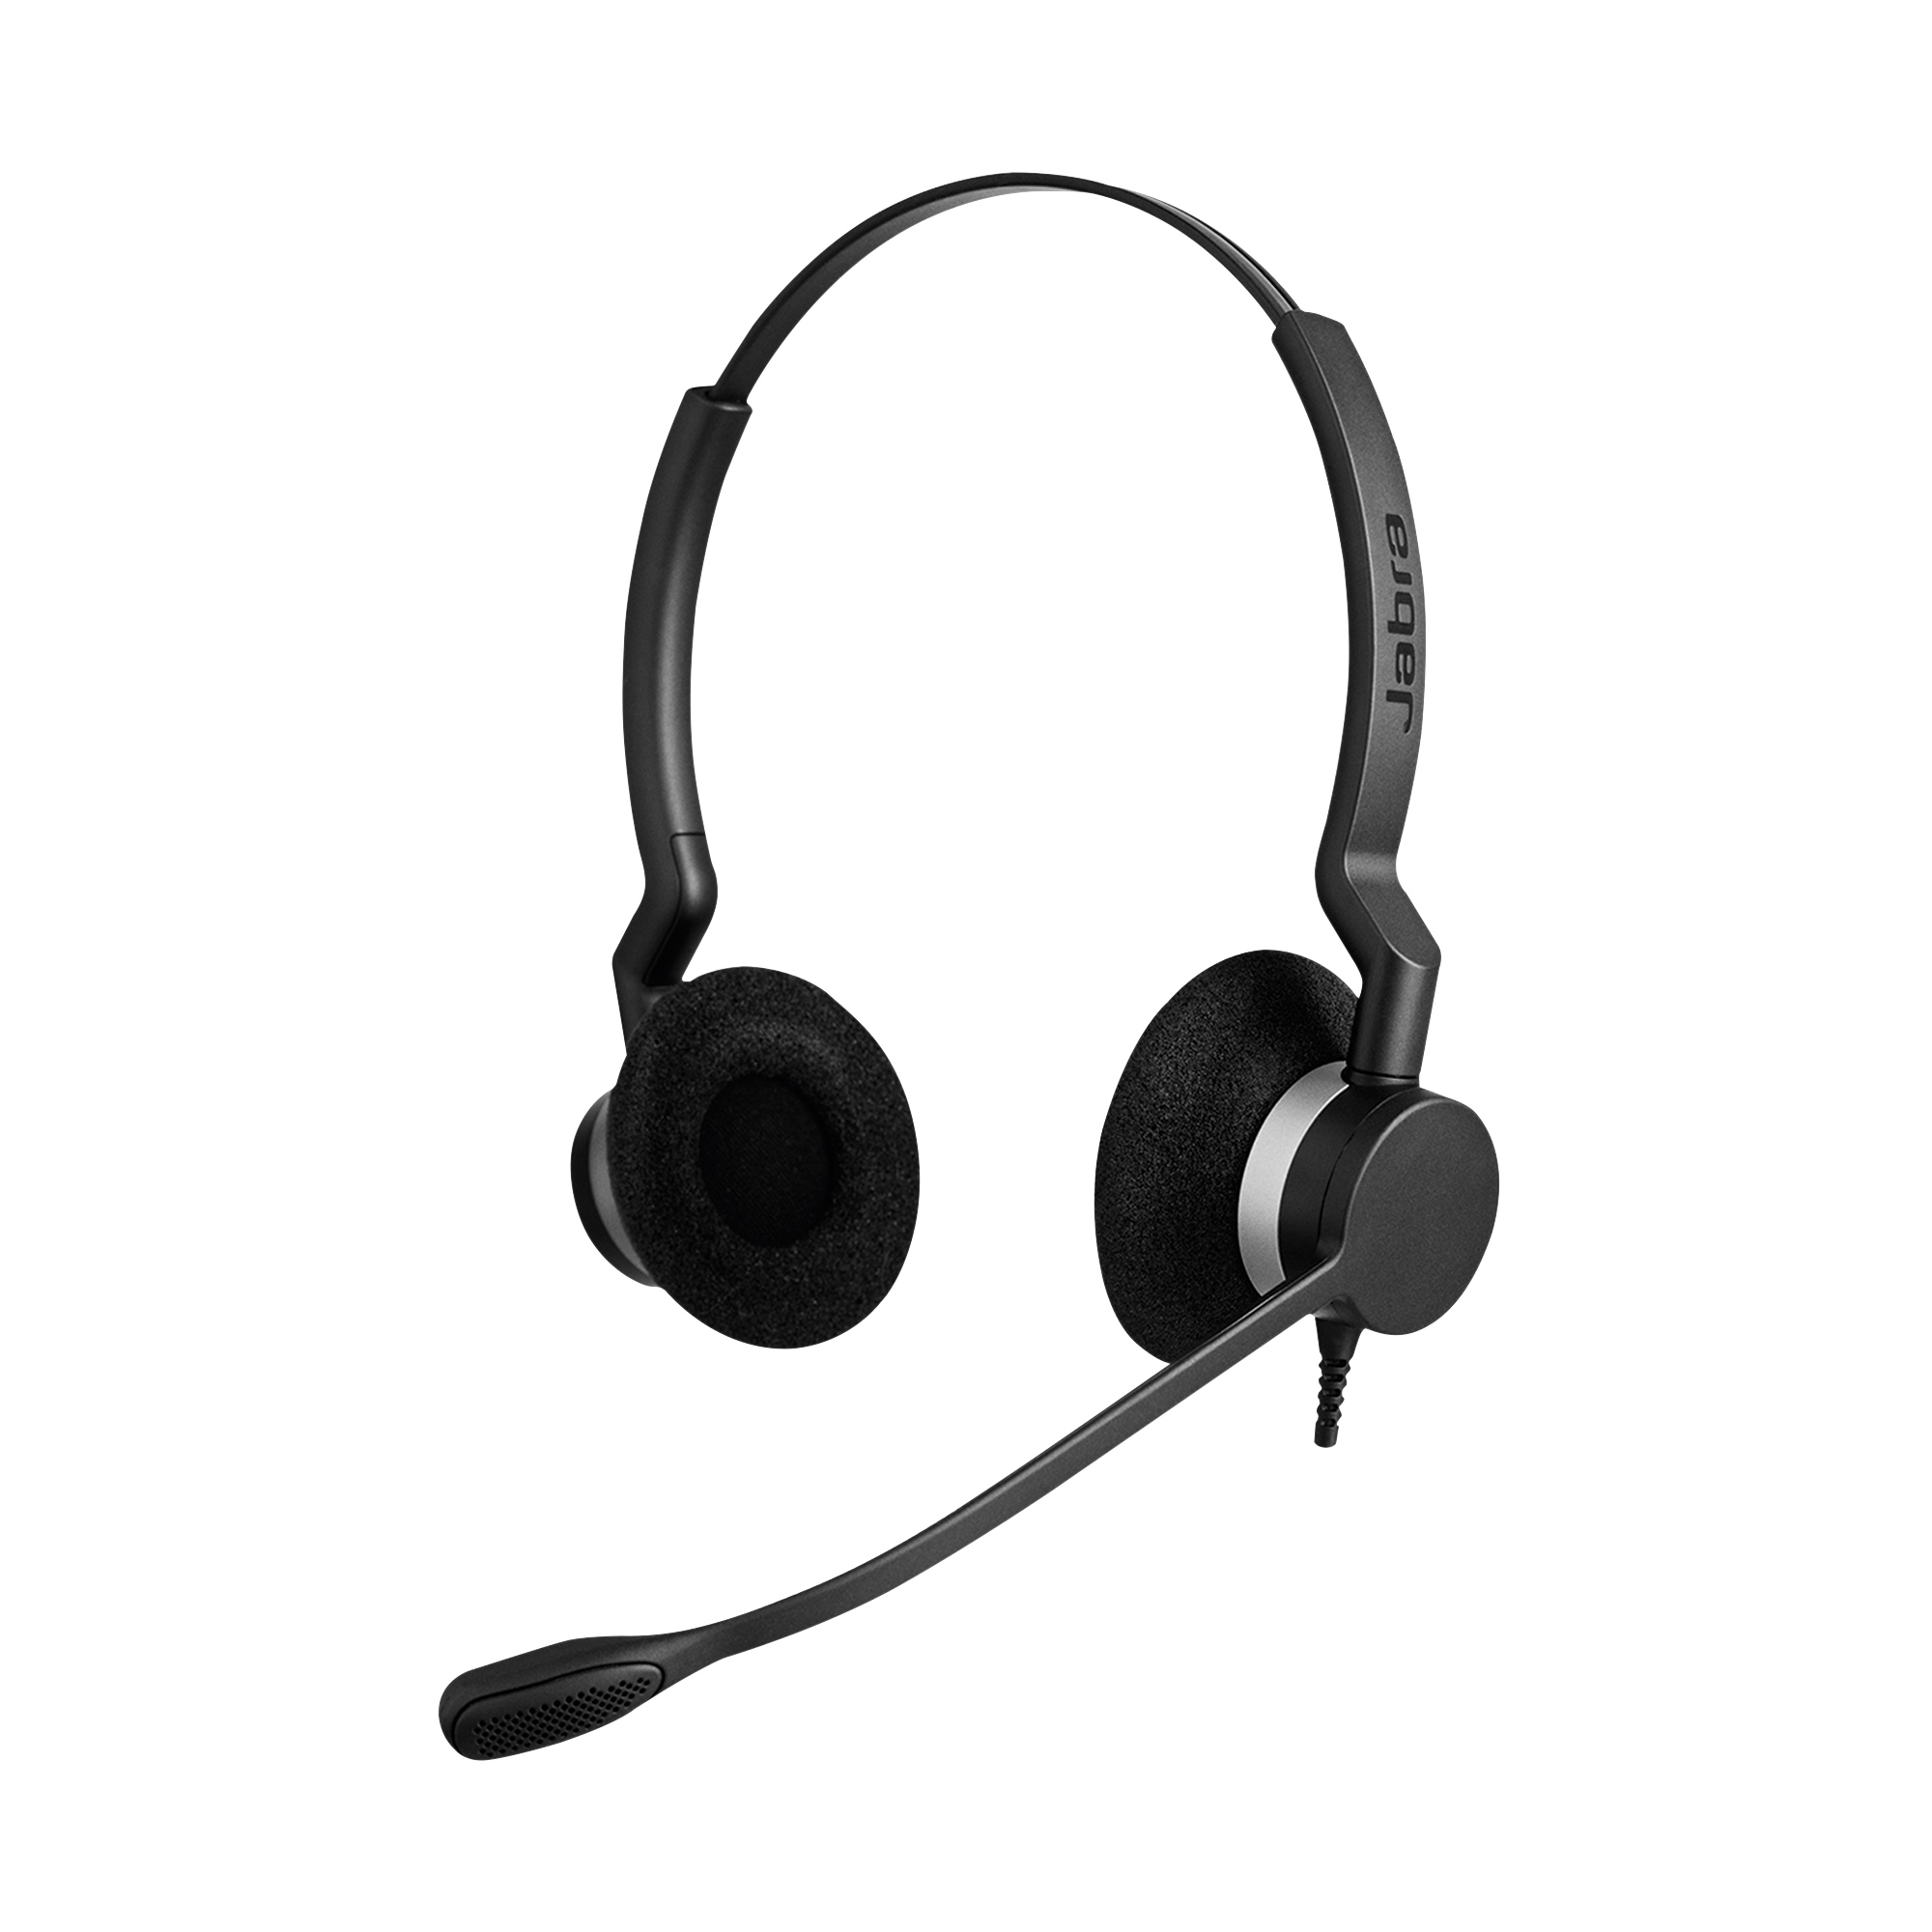 Phone headsets Jabra BIZ 2300 Dual Headset With Noise Cancelling Microphone Ref 2309-820-104